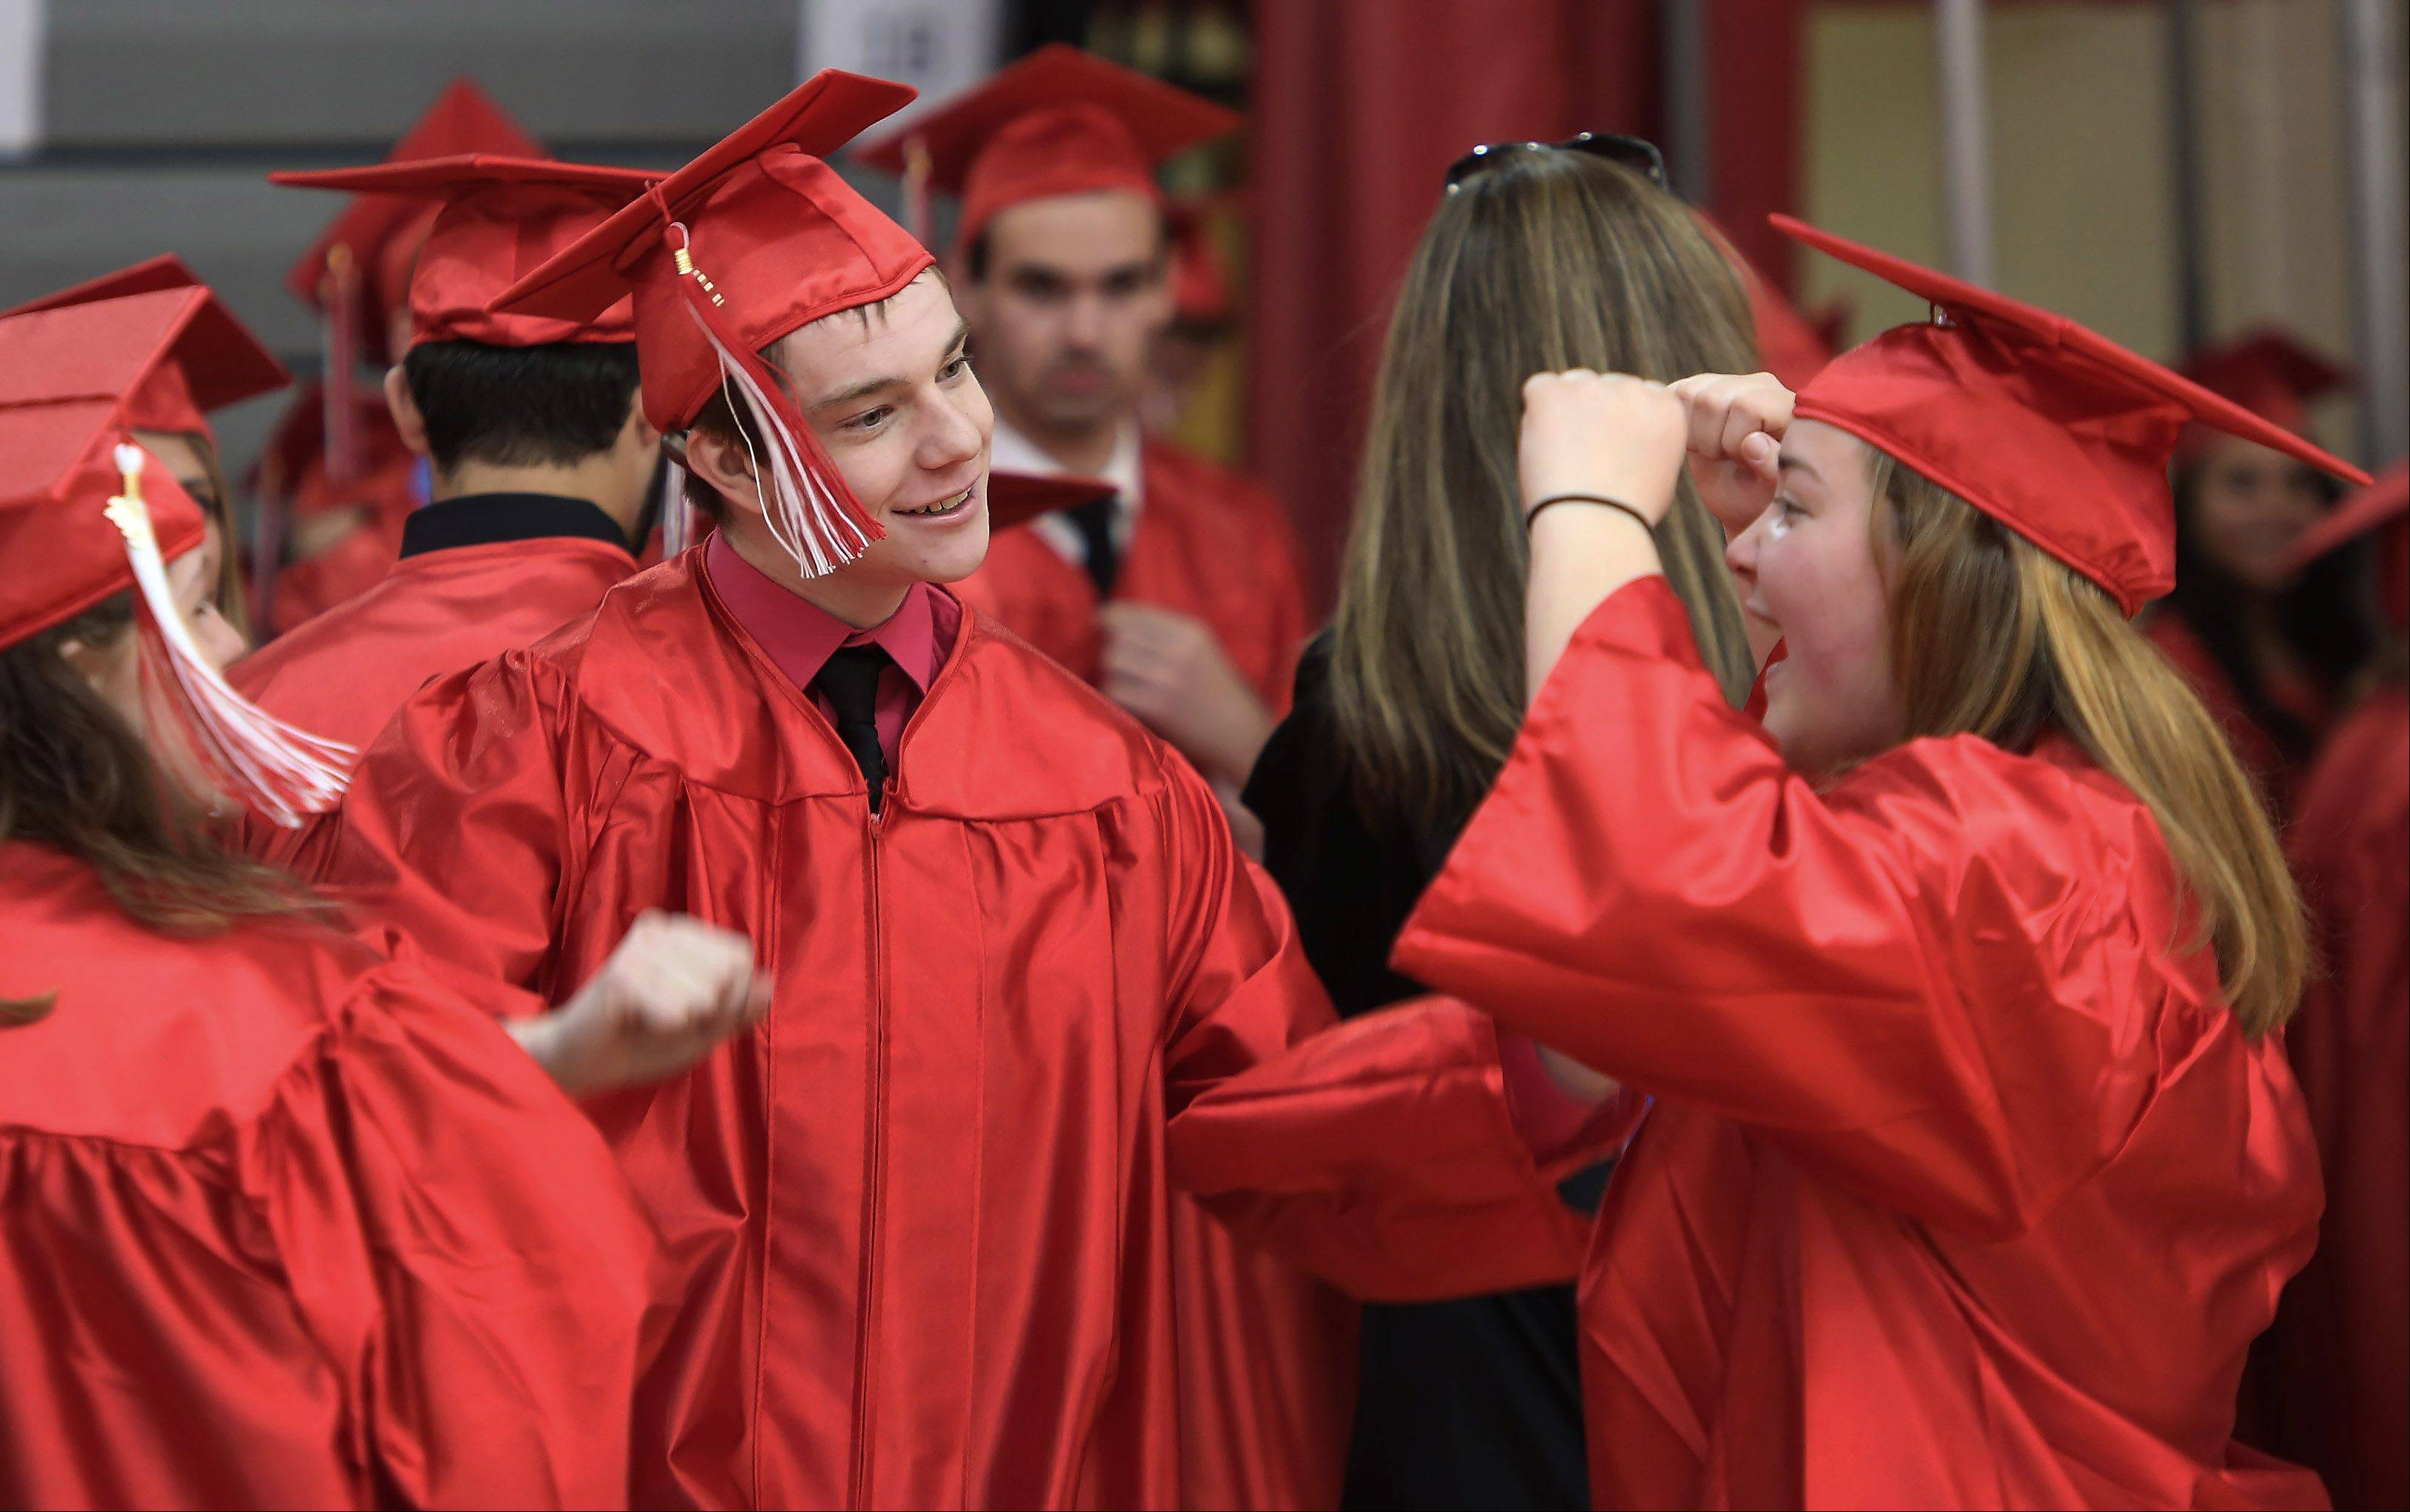 Kevin Farmer, left, dances with Felicia Ewig during the Grant High School graduation ceremony on Sunday. There were 399 seniors graduating this year at the school.